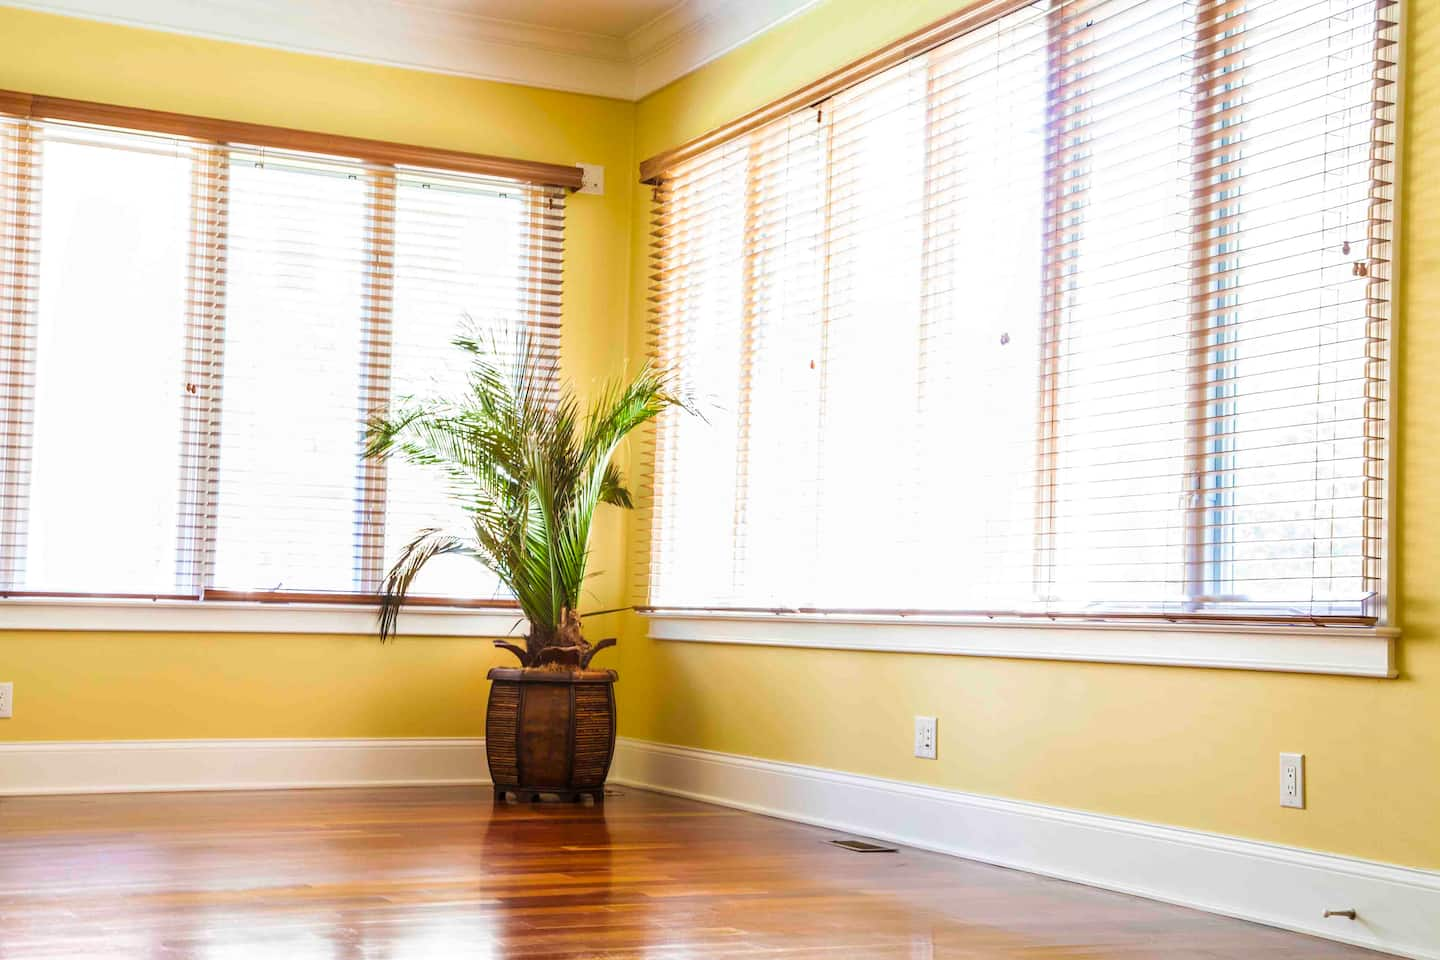 Interior window frames - Windows With Blinds In Room Photo By Photo By Katelin Kinney